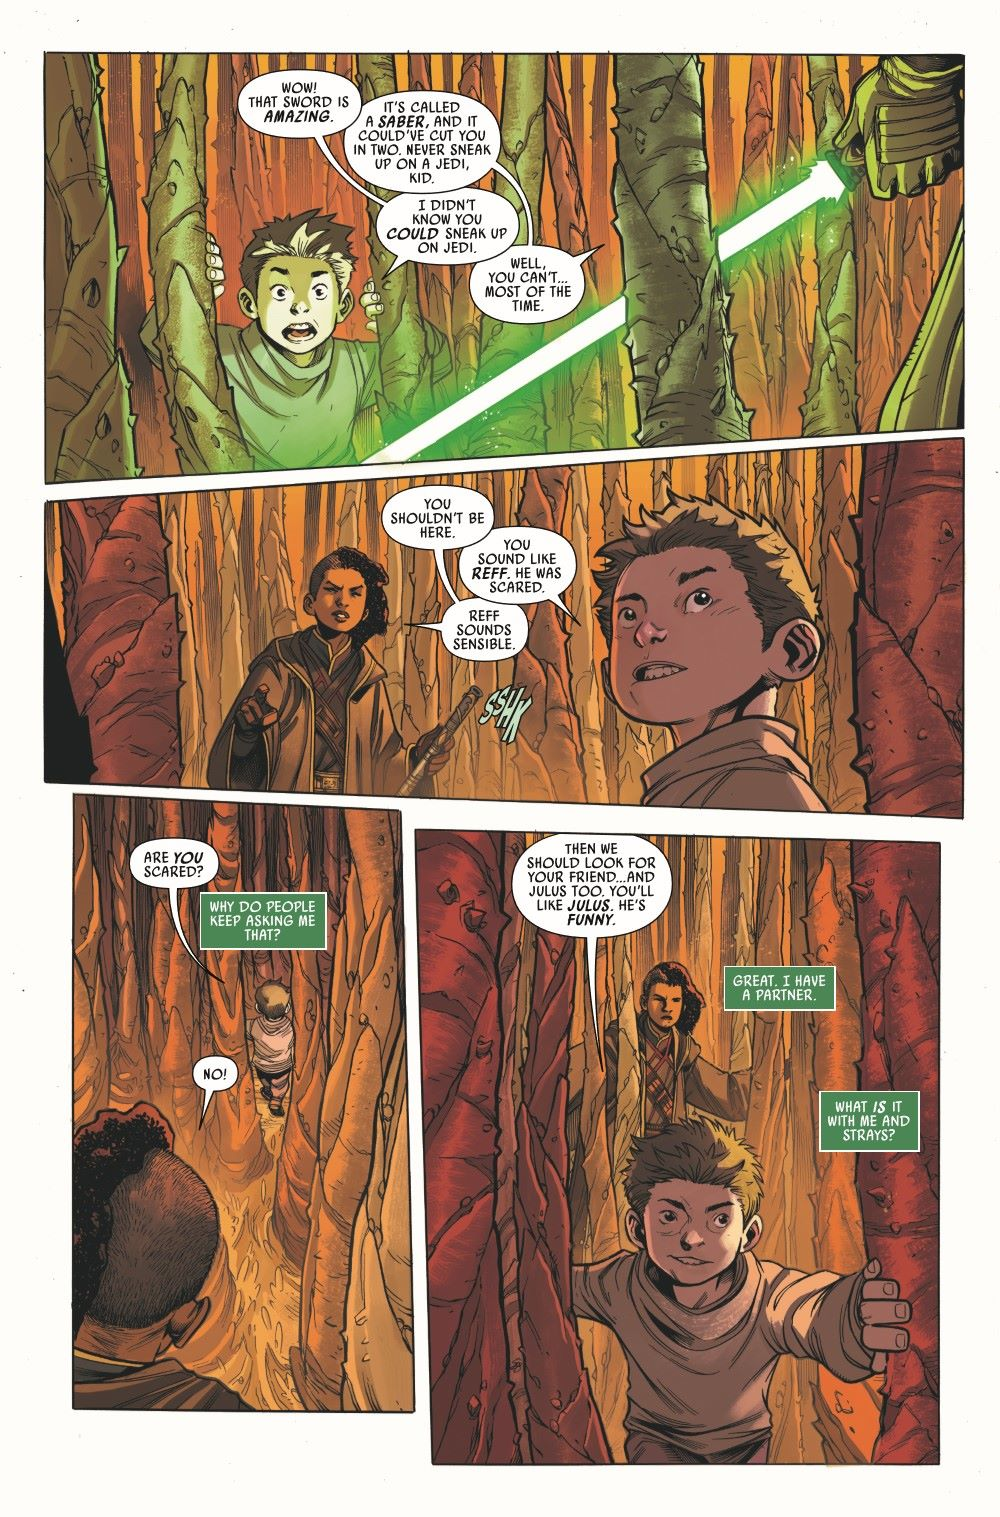 STWHIGHREP2020003_Preview-4 ComicList Previews: STAR WARS THE HIGH REPUBLIC #3